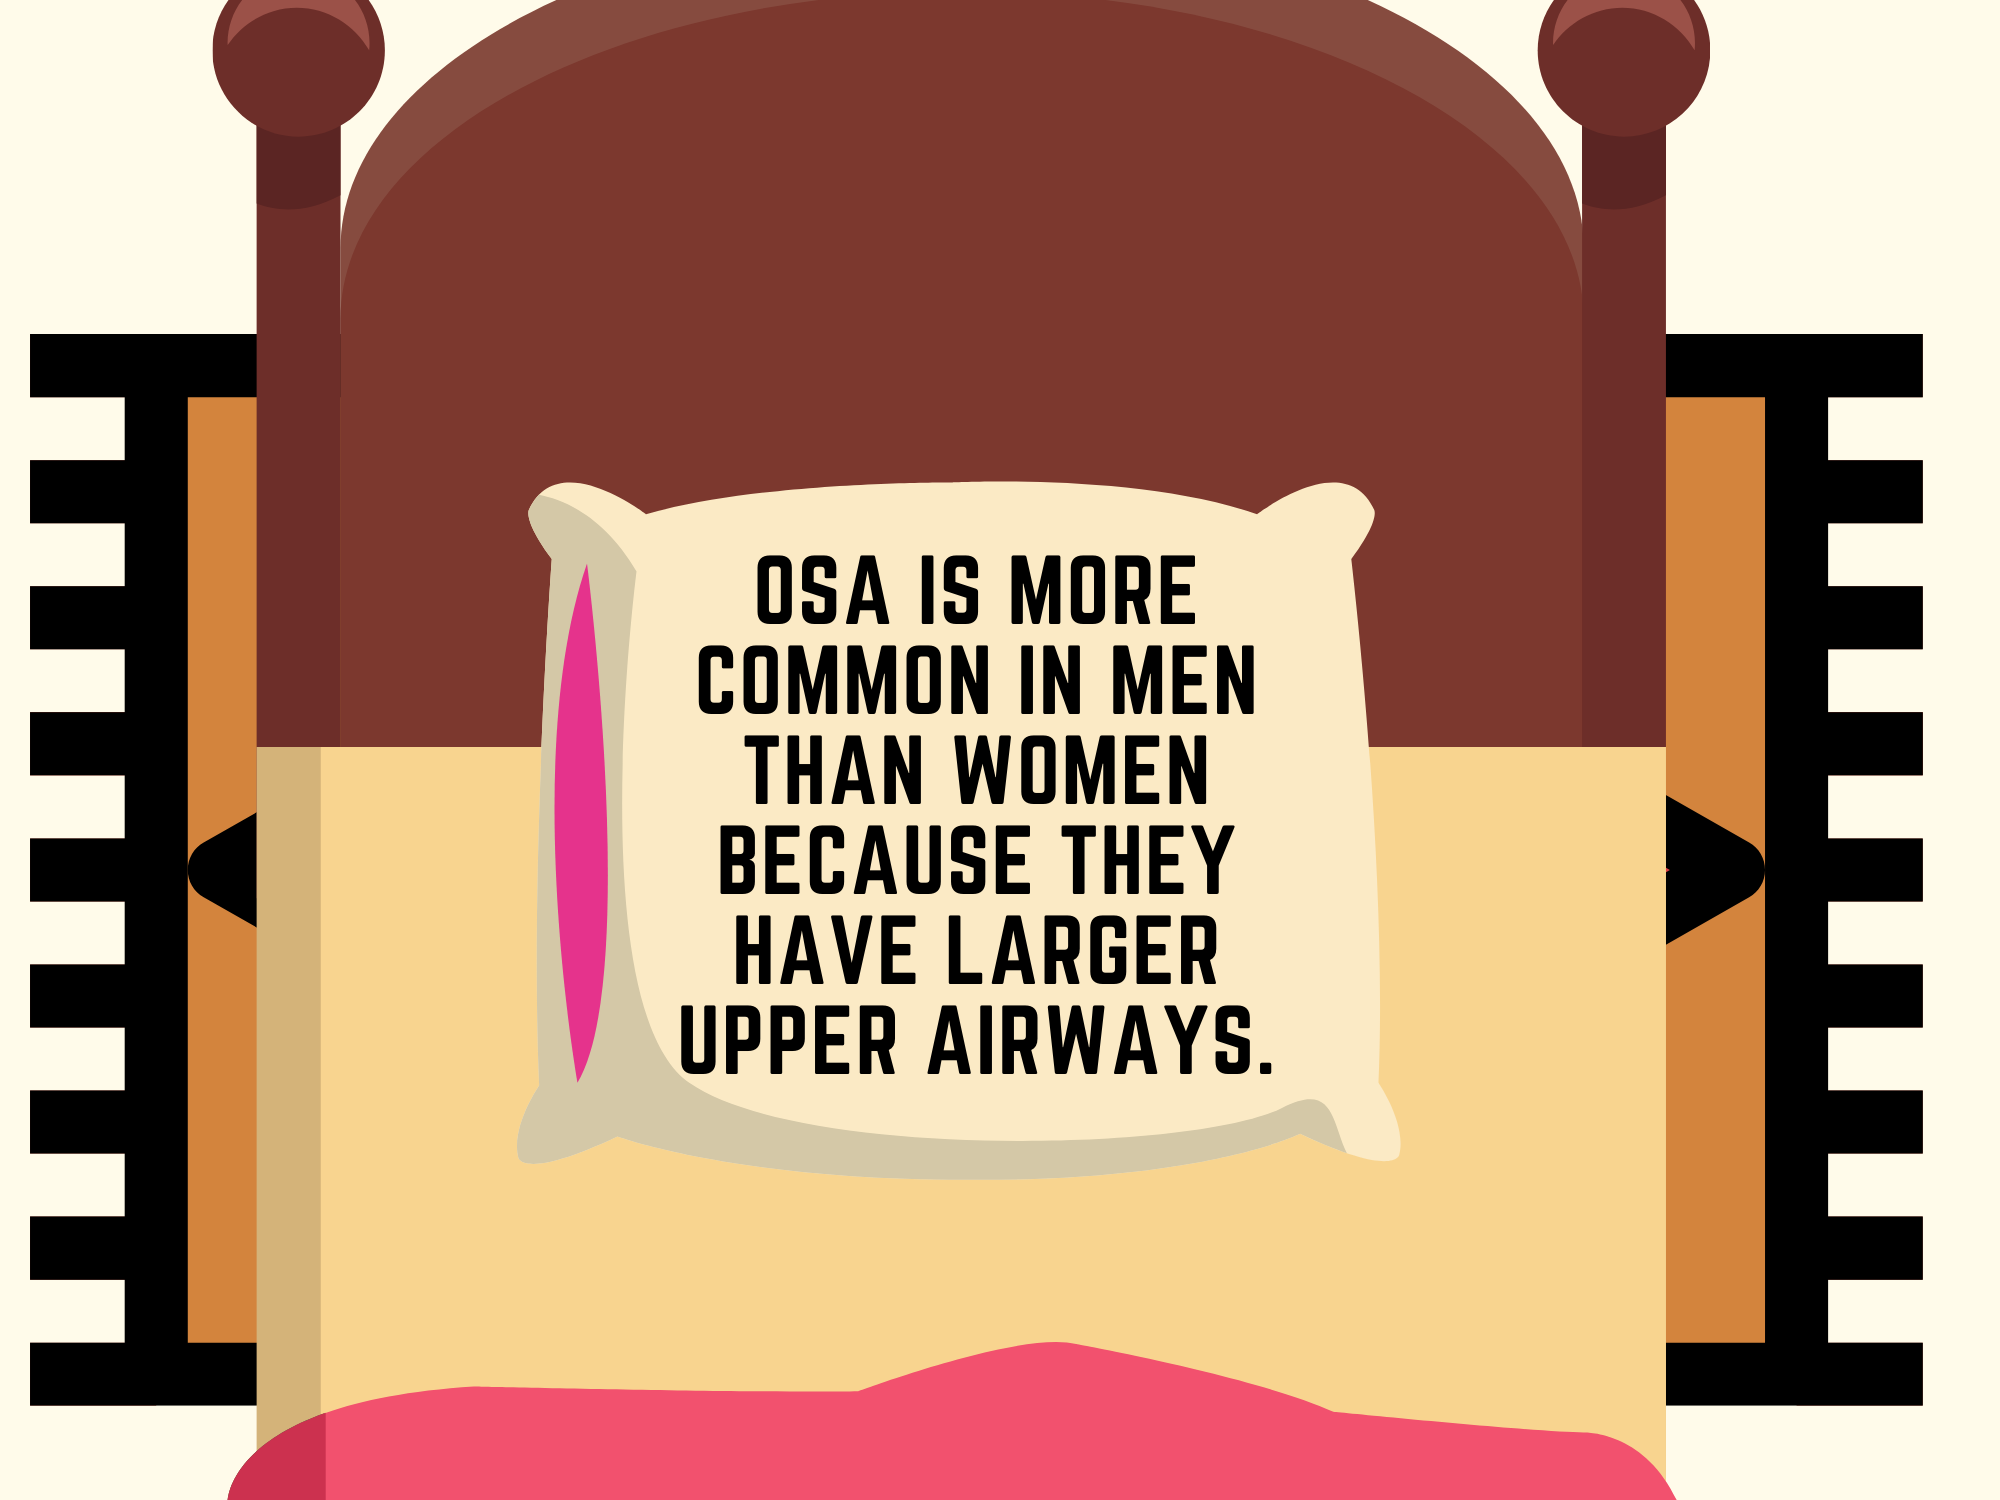 OSA-is-more-common-in-men-than-women-because-they-have-larger-upper-airways